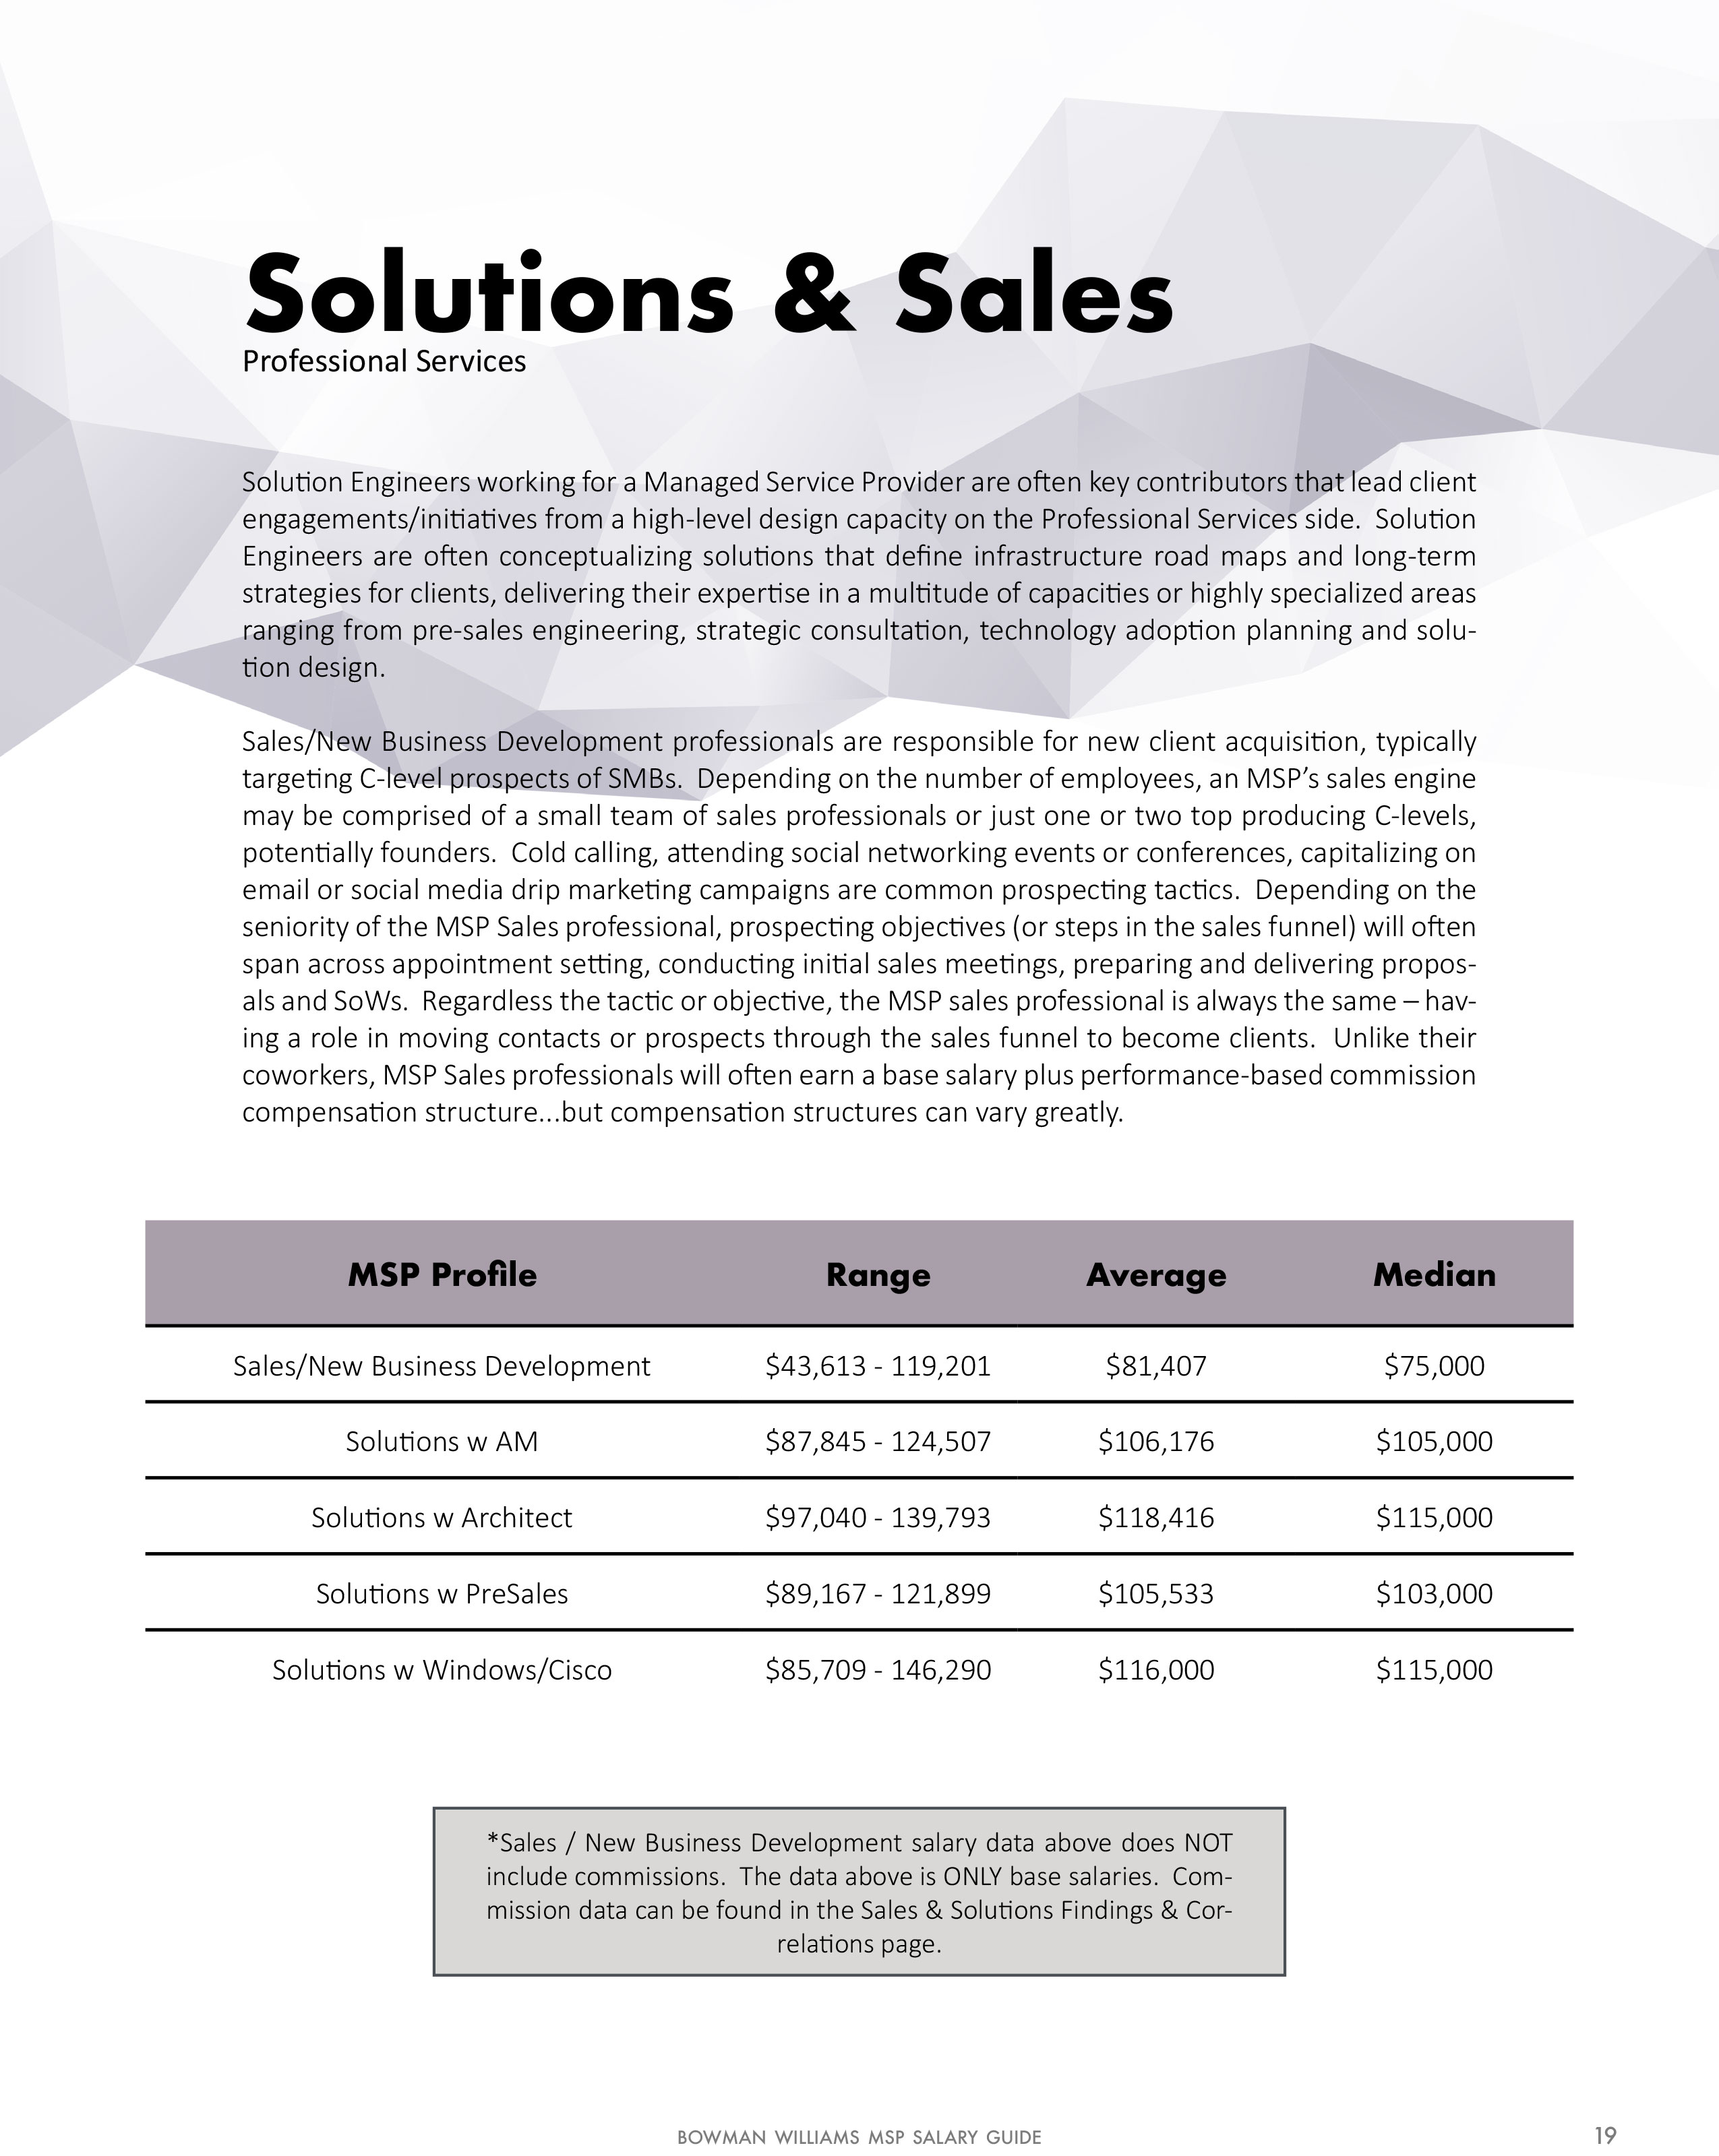 solutions-sales-1